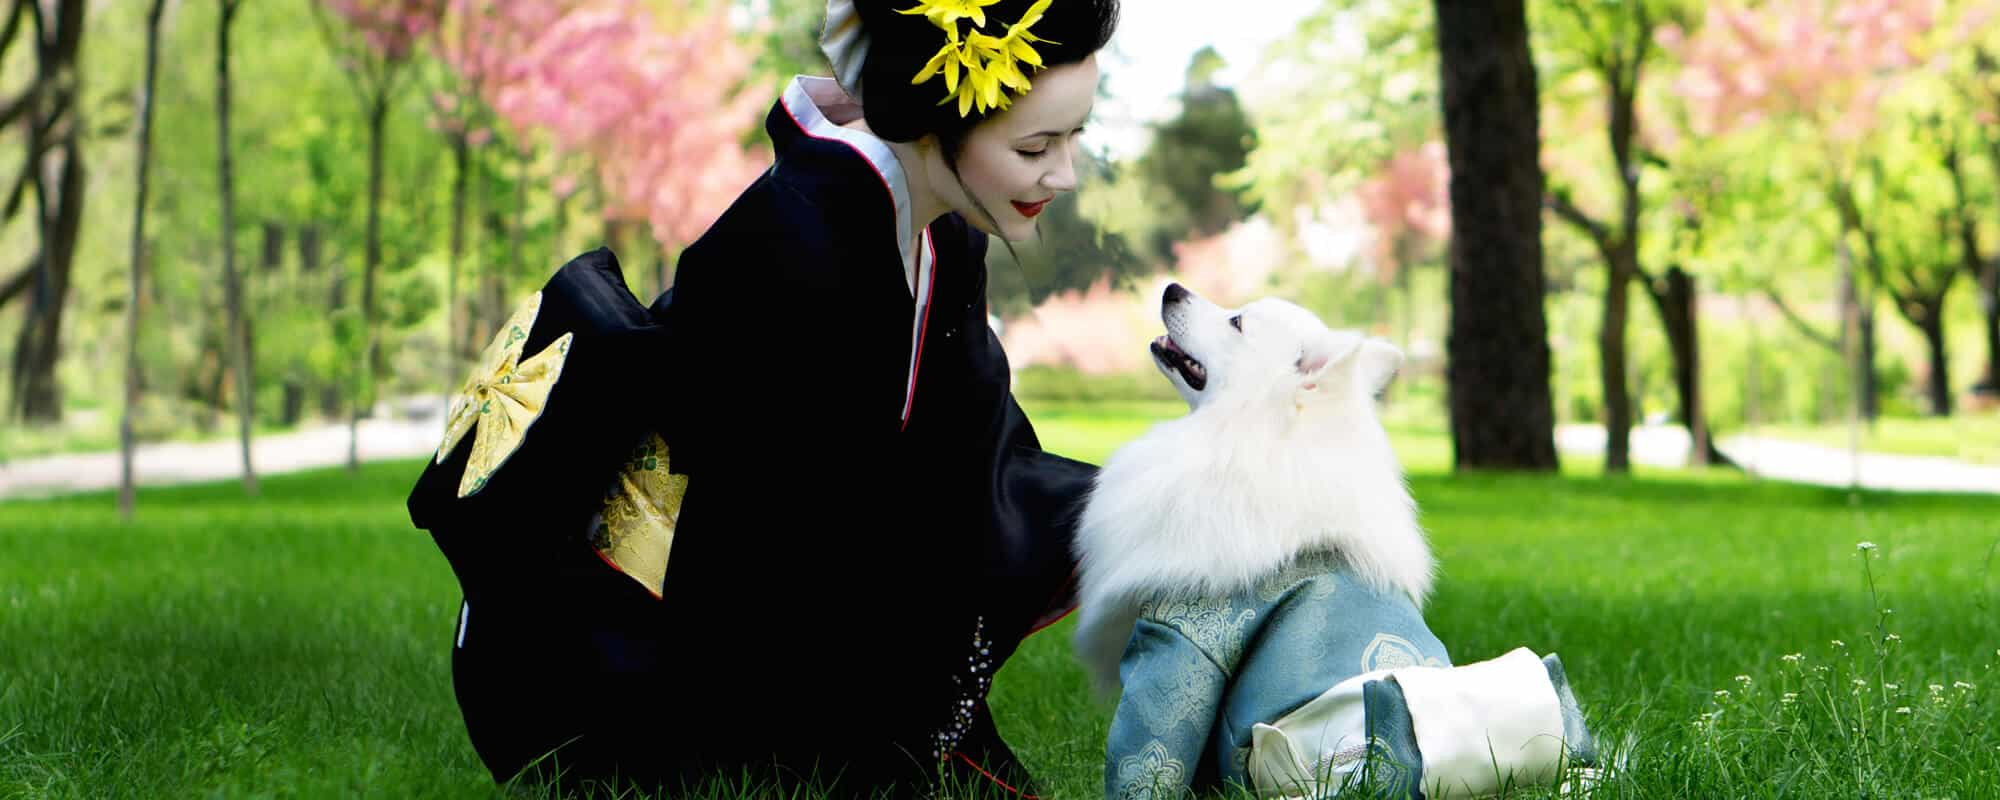 5 Ways Pet Can Make your Daily Life Better